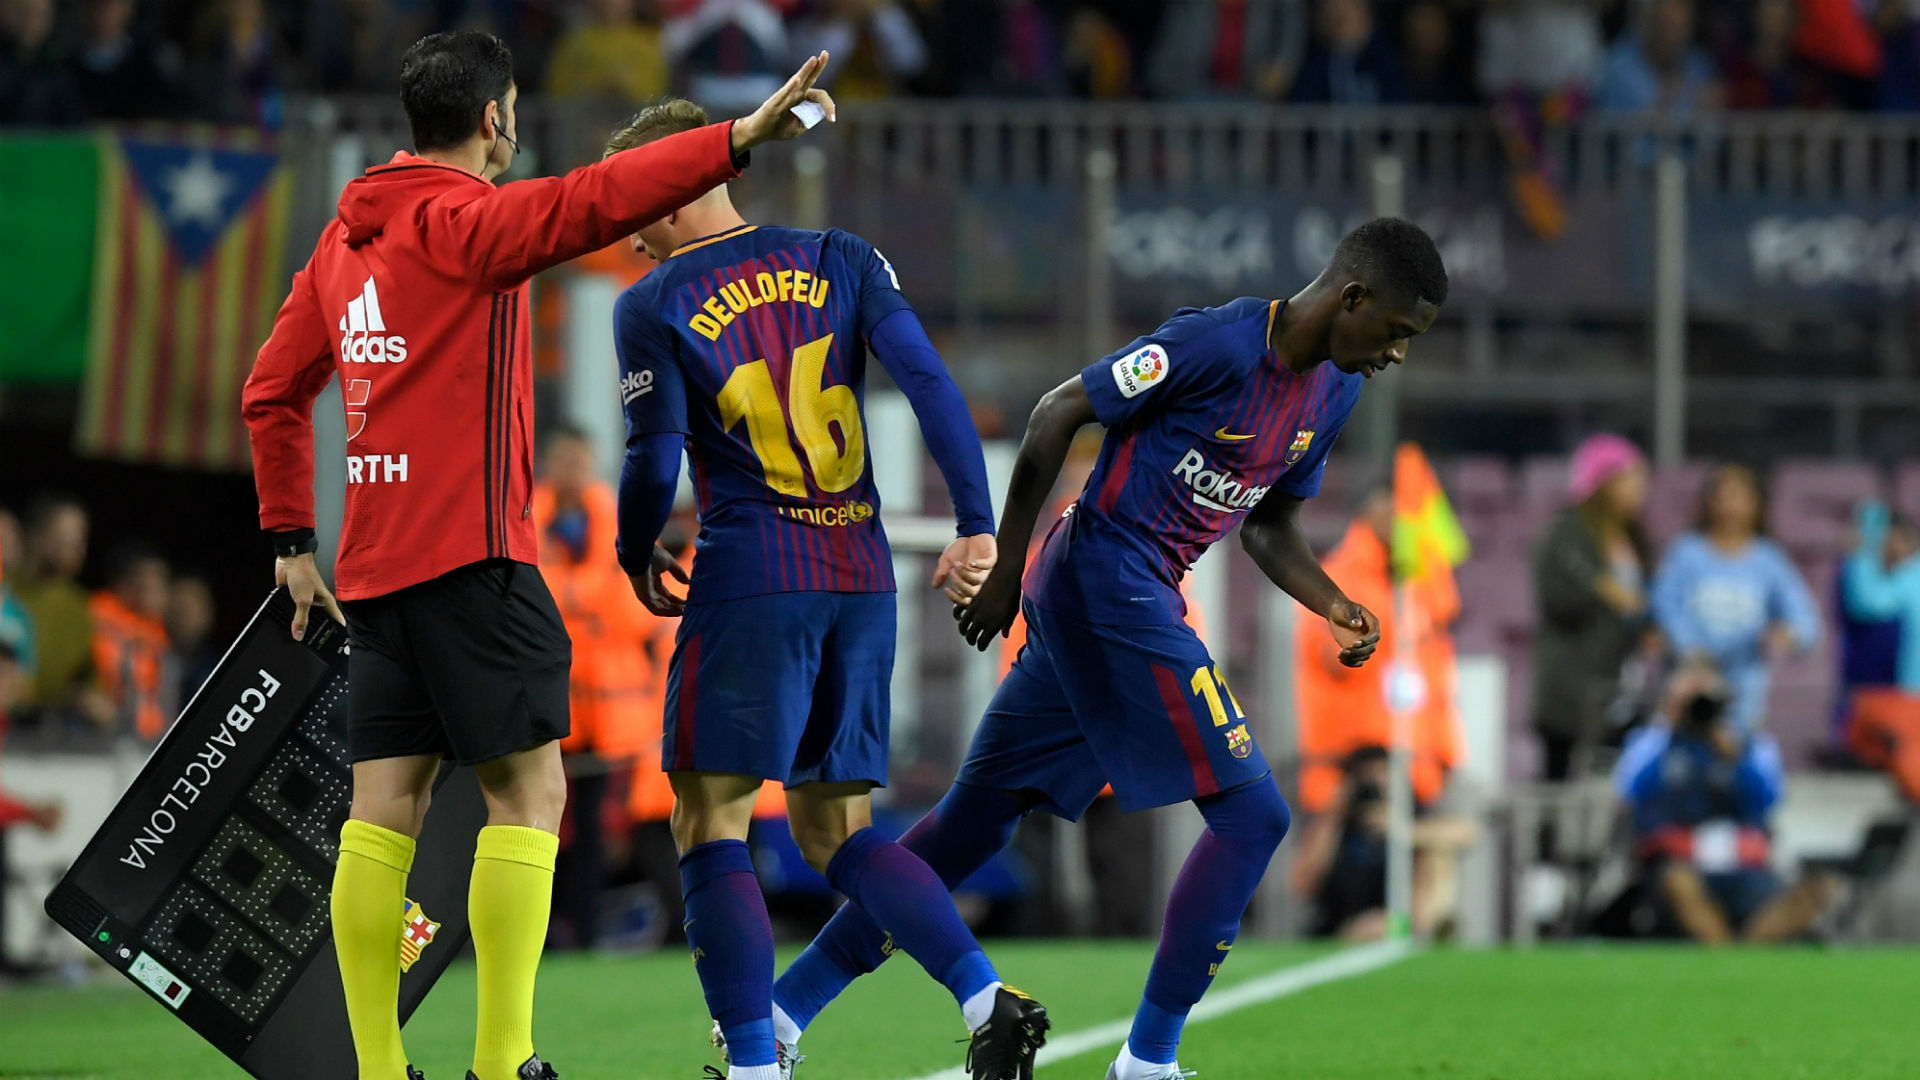 d777b996211 La Liga news: Ousmane Dembele notches assist after making Barcelona debut  as substitute | Sporting News Canada